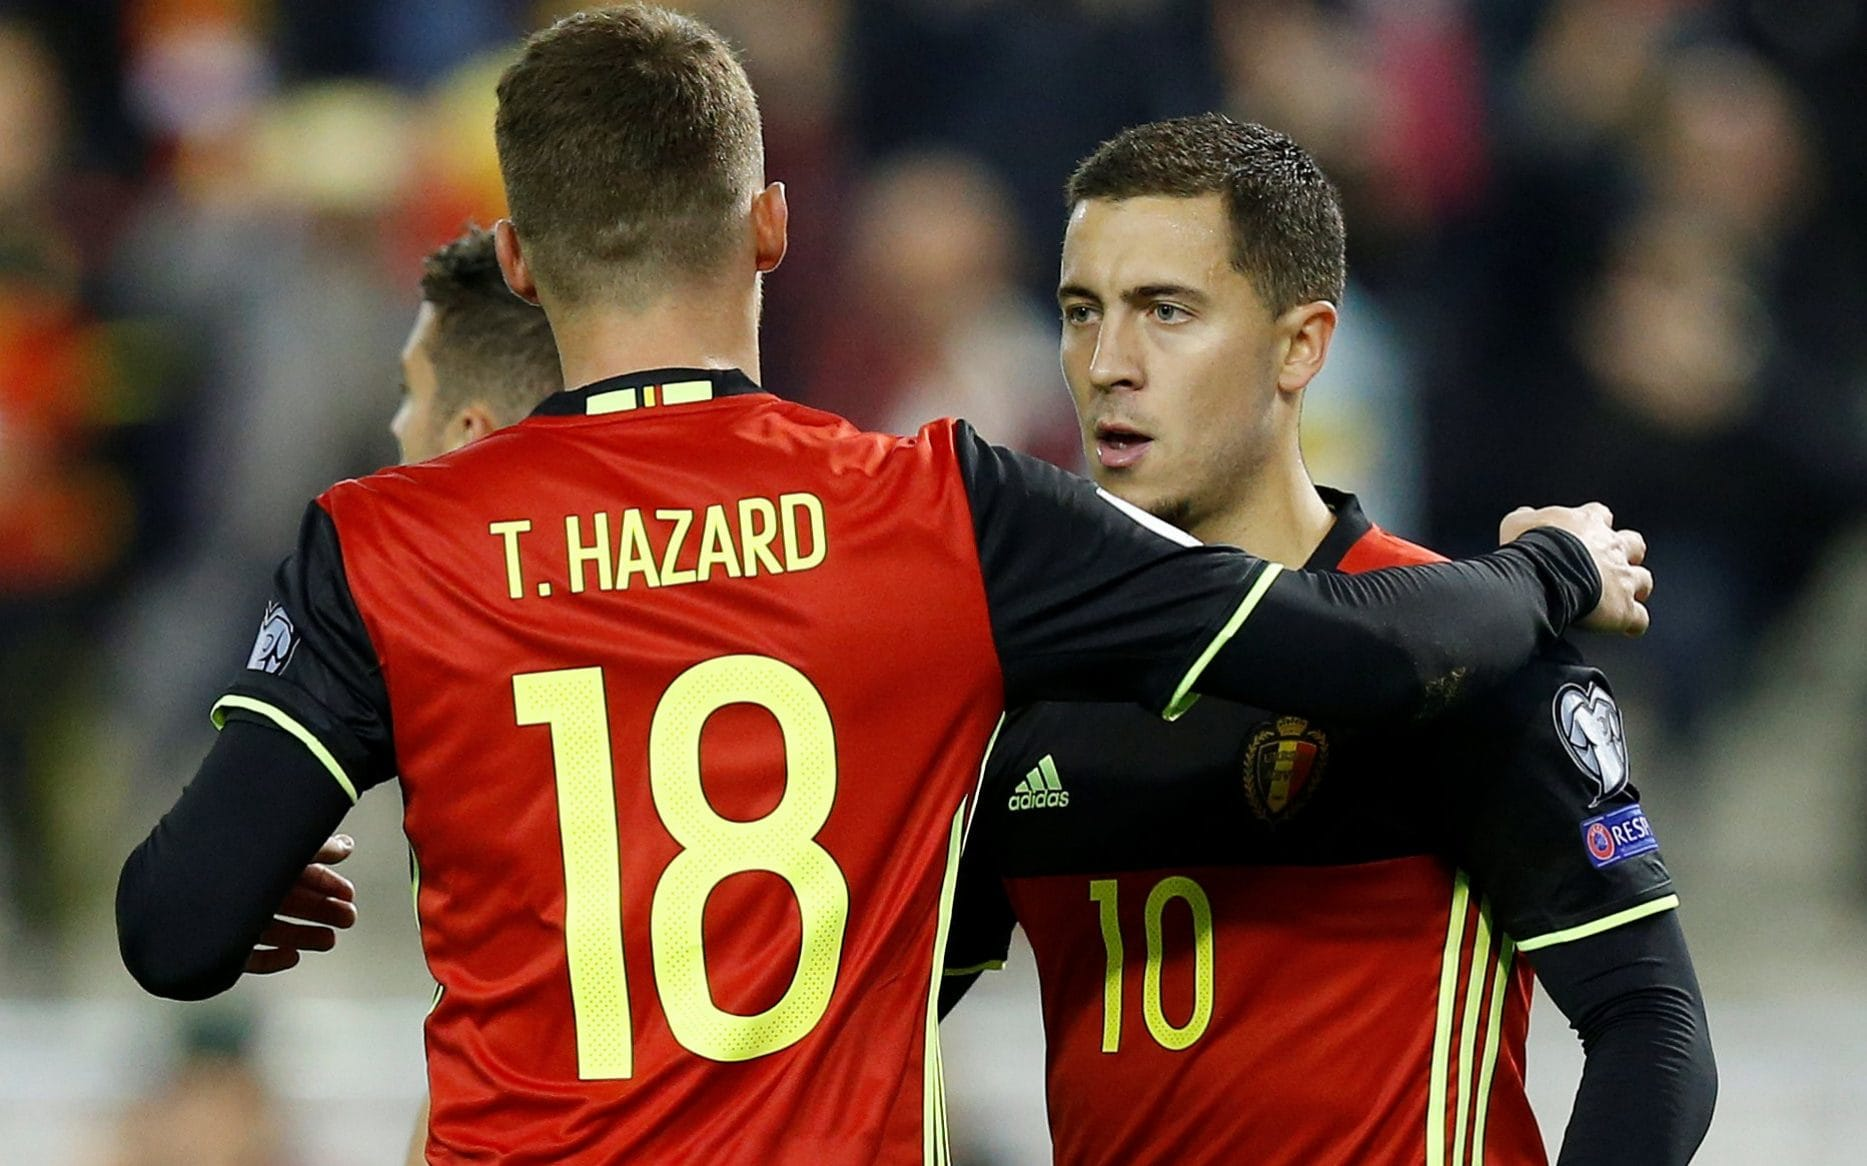 Hazard not considering Sevilla move